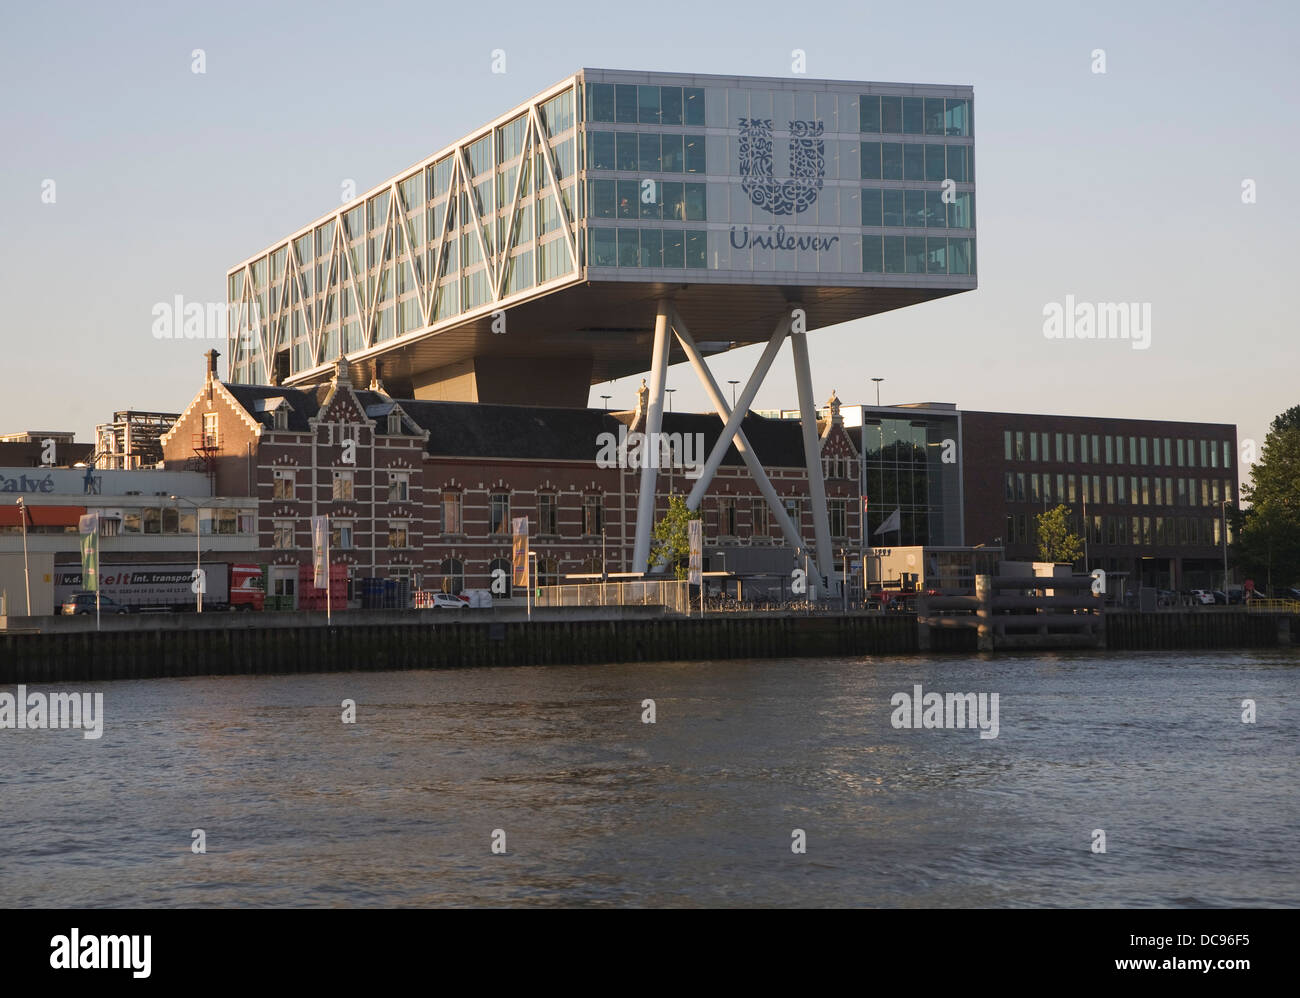 Unilever offices built over old factory building Rotterdam Netherlands - Stock Image